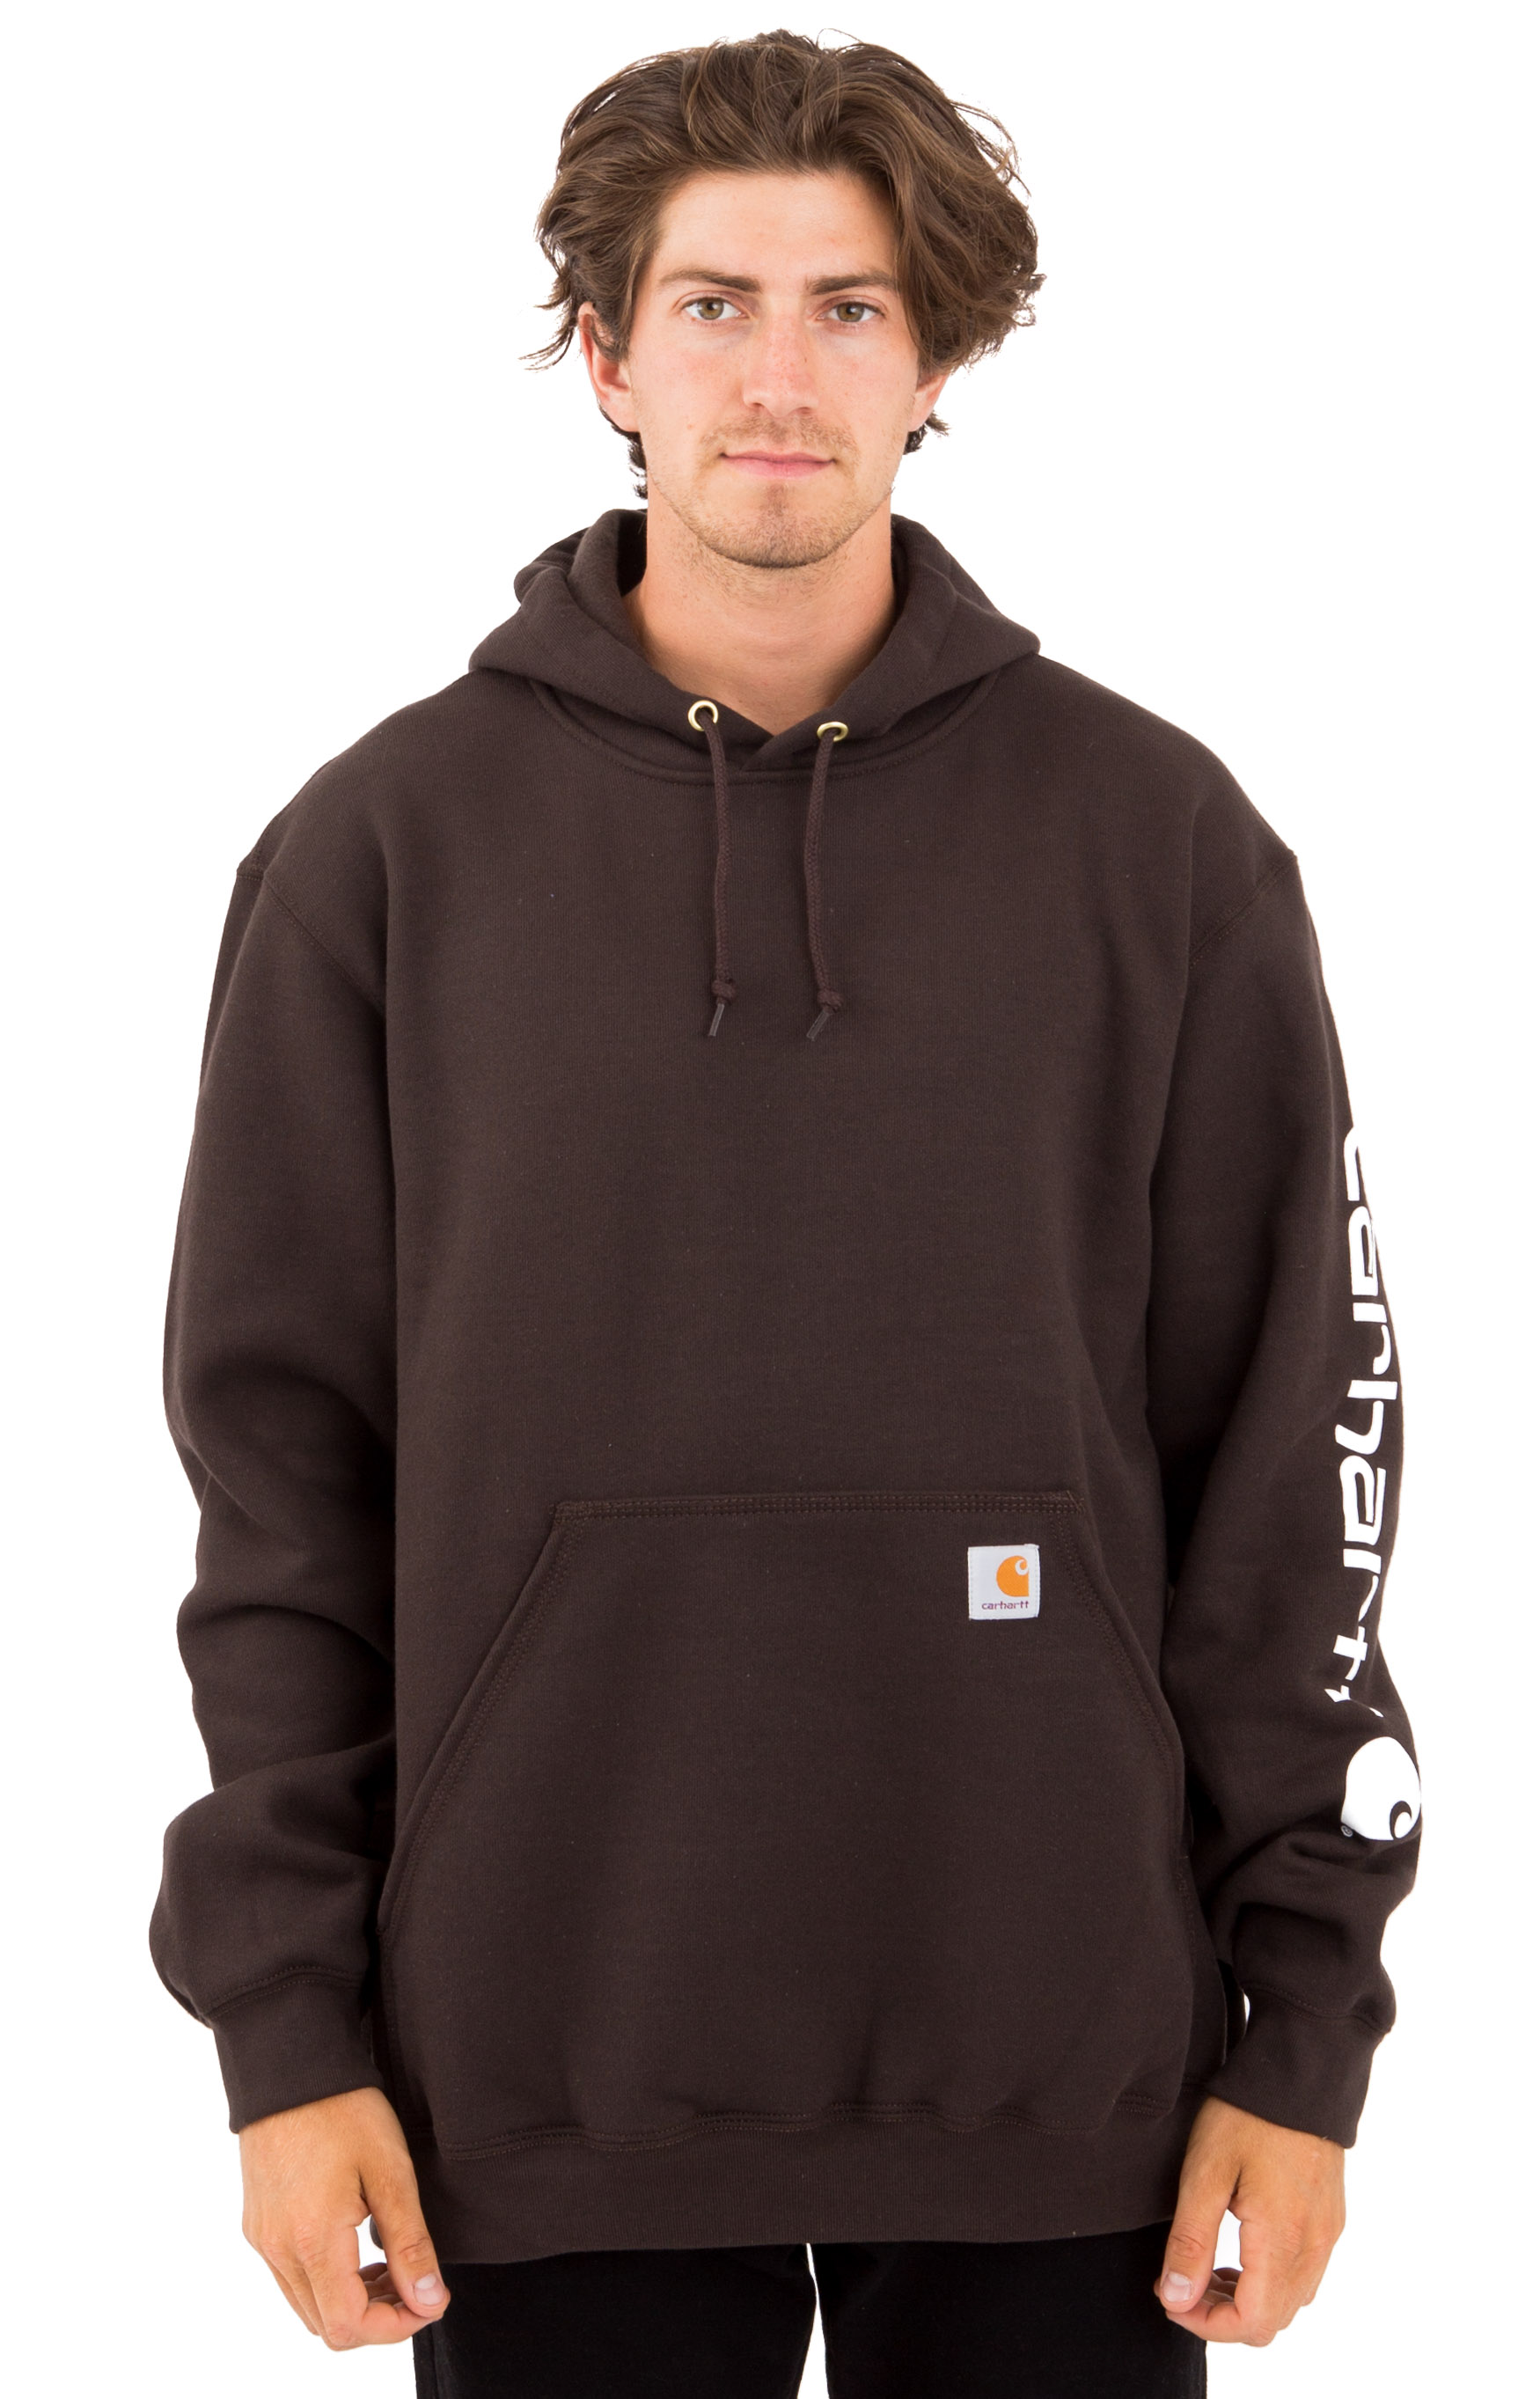 (K288) MW Signature Sleeve Logo Pullover Hoodie - Dark Brown